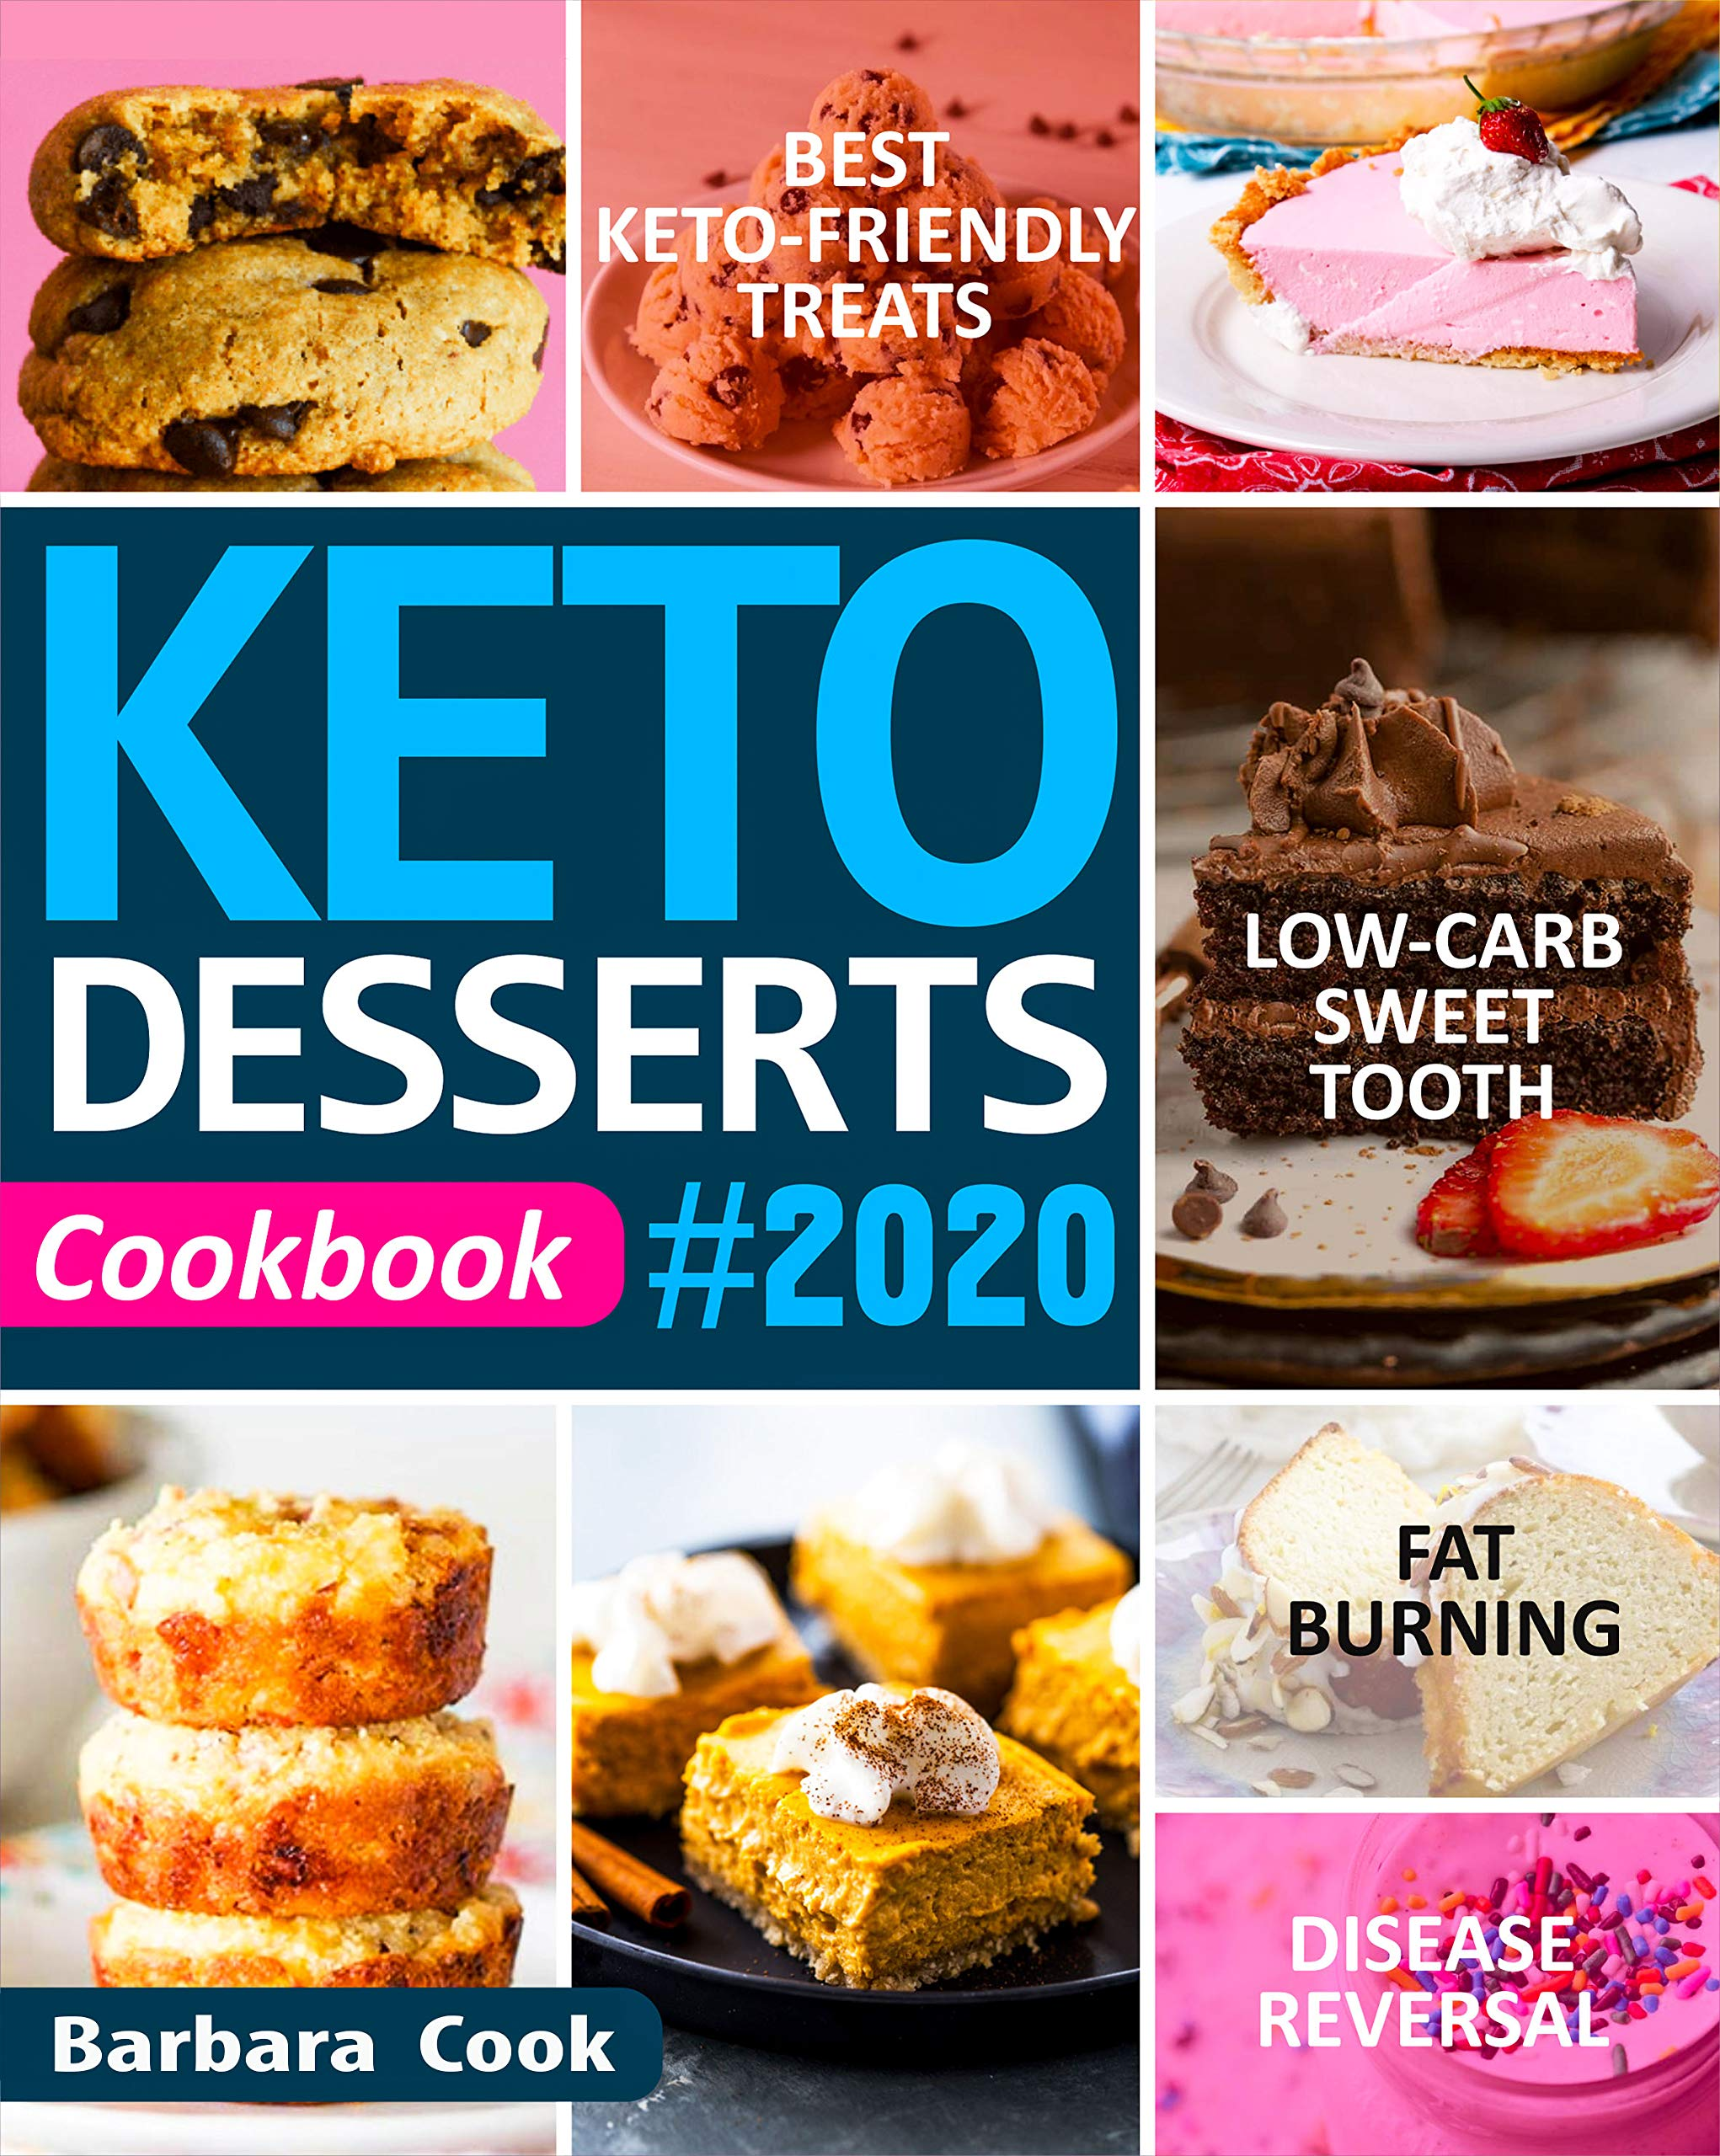 KETO DESSERTS COOKBOOK #2020: Best Keto-Friendly Treats for Your Low-Carb Sweet Tooth Fat Burning & Disease Reversal (English Edition)